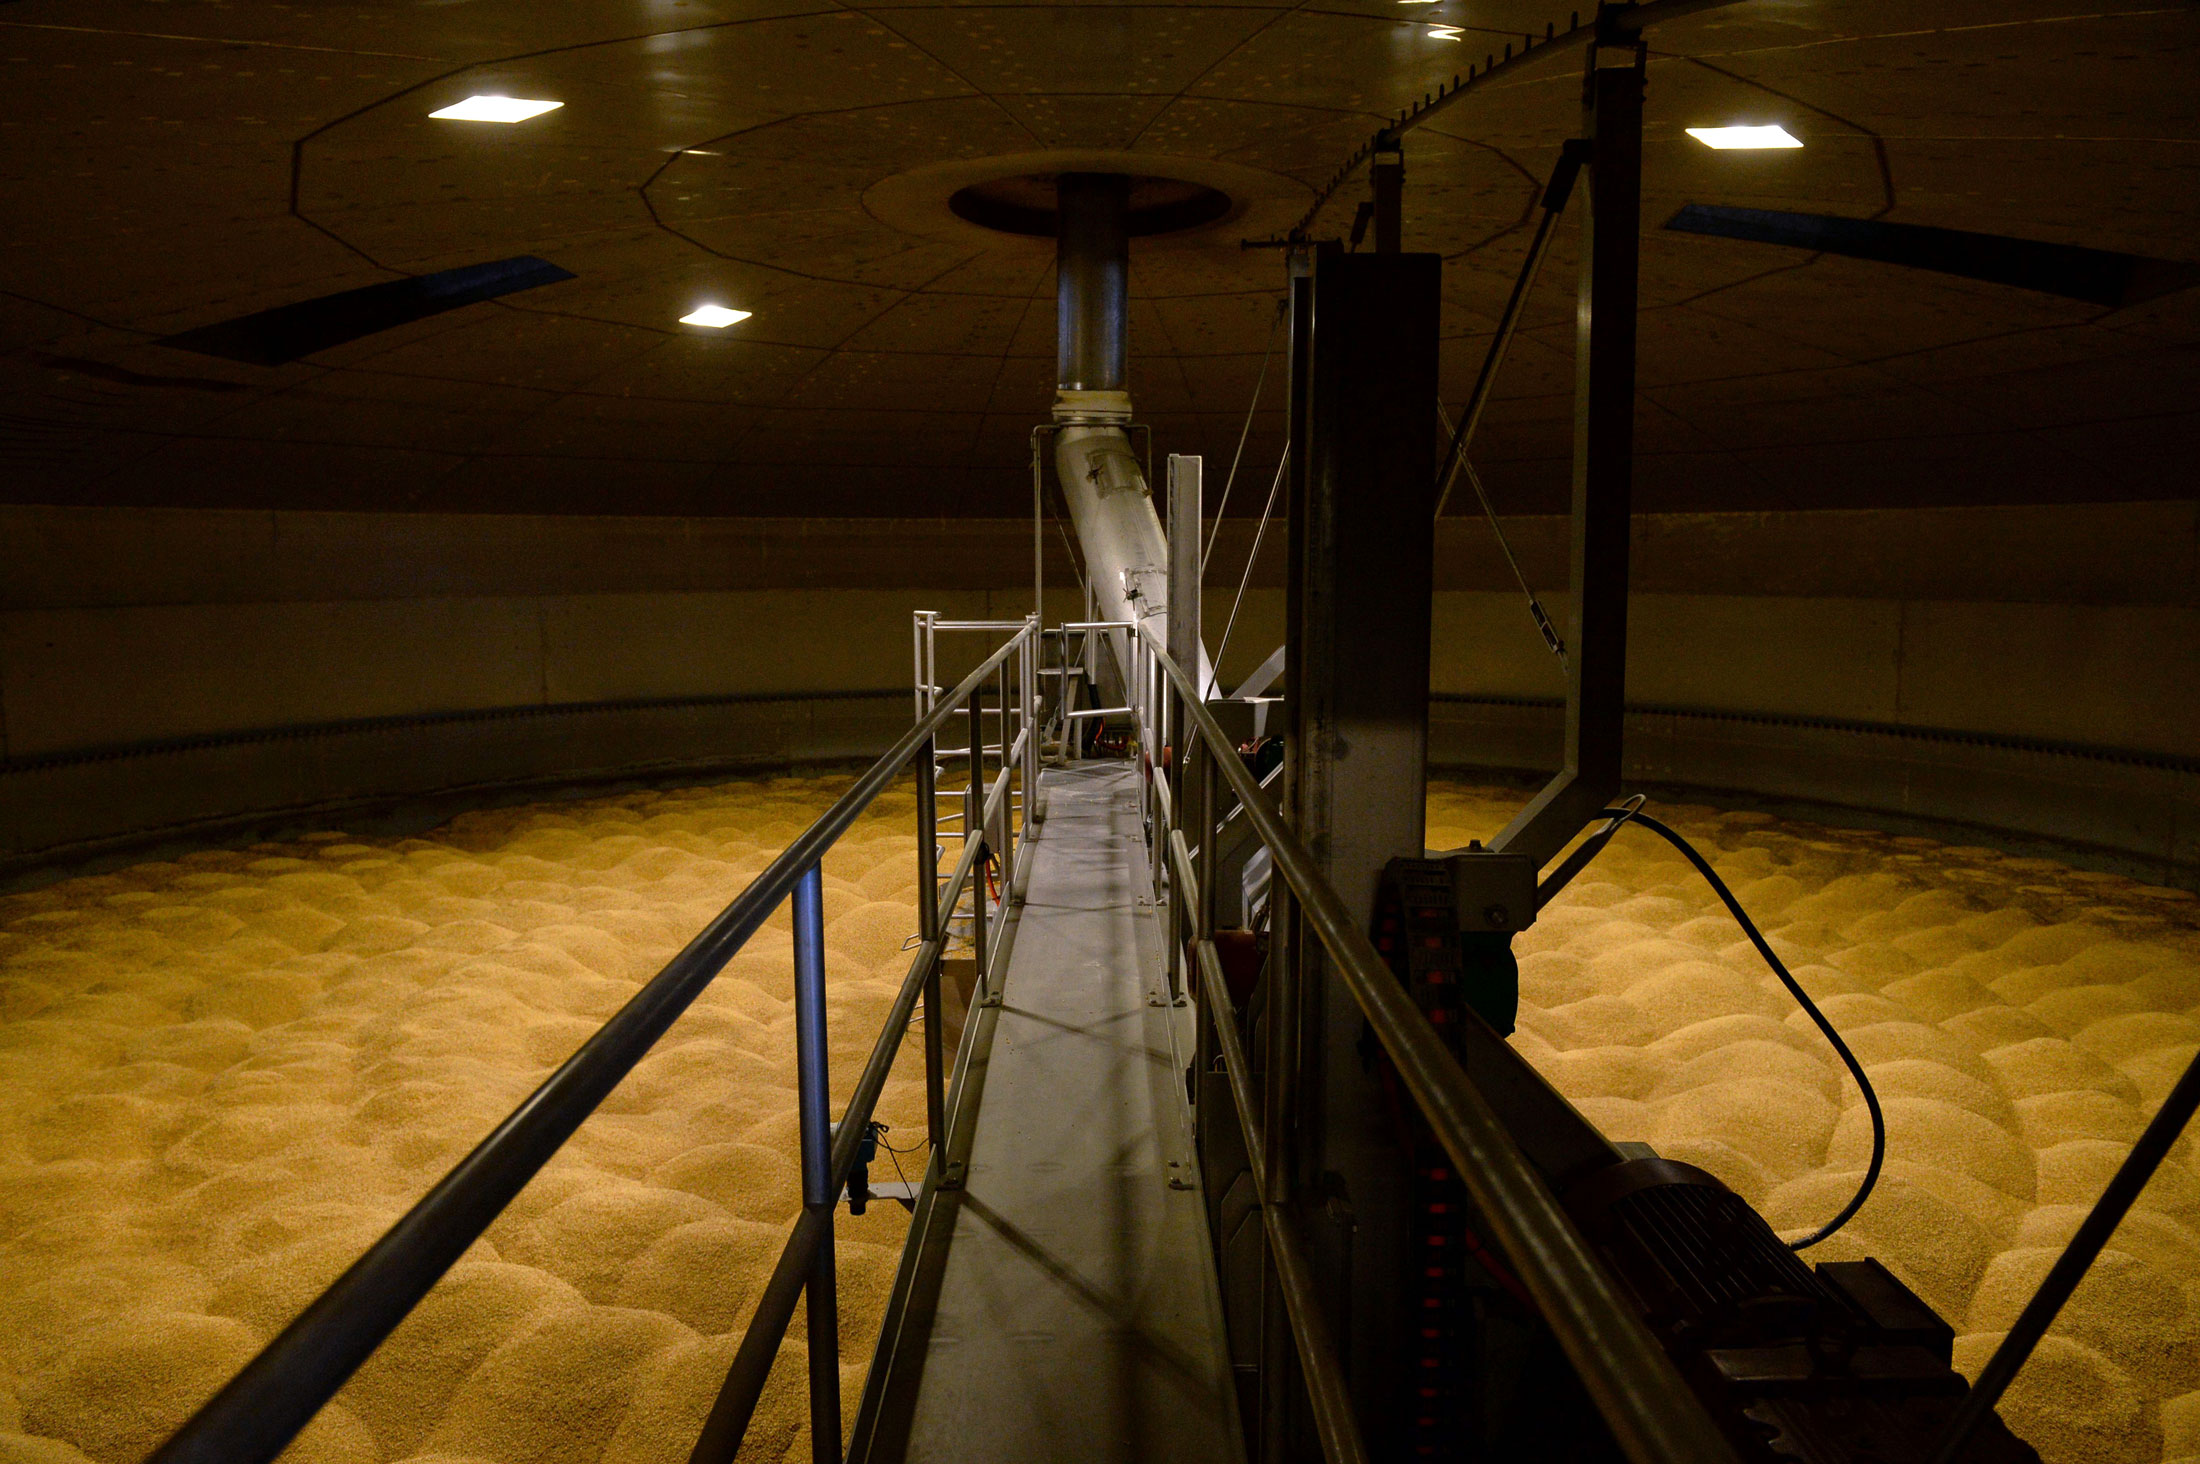 Barley in a tank during a stage of the malting process at the Boortmalt production facilities in Antwerp.